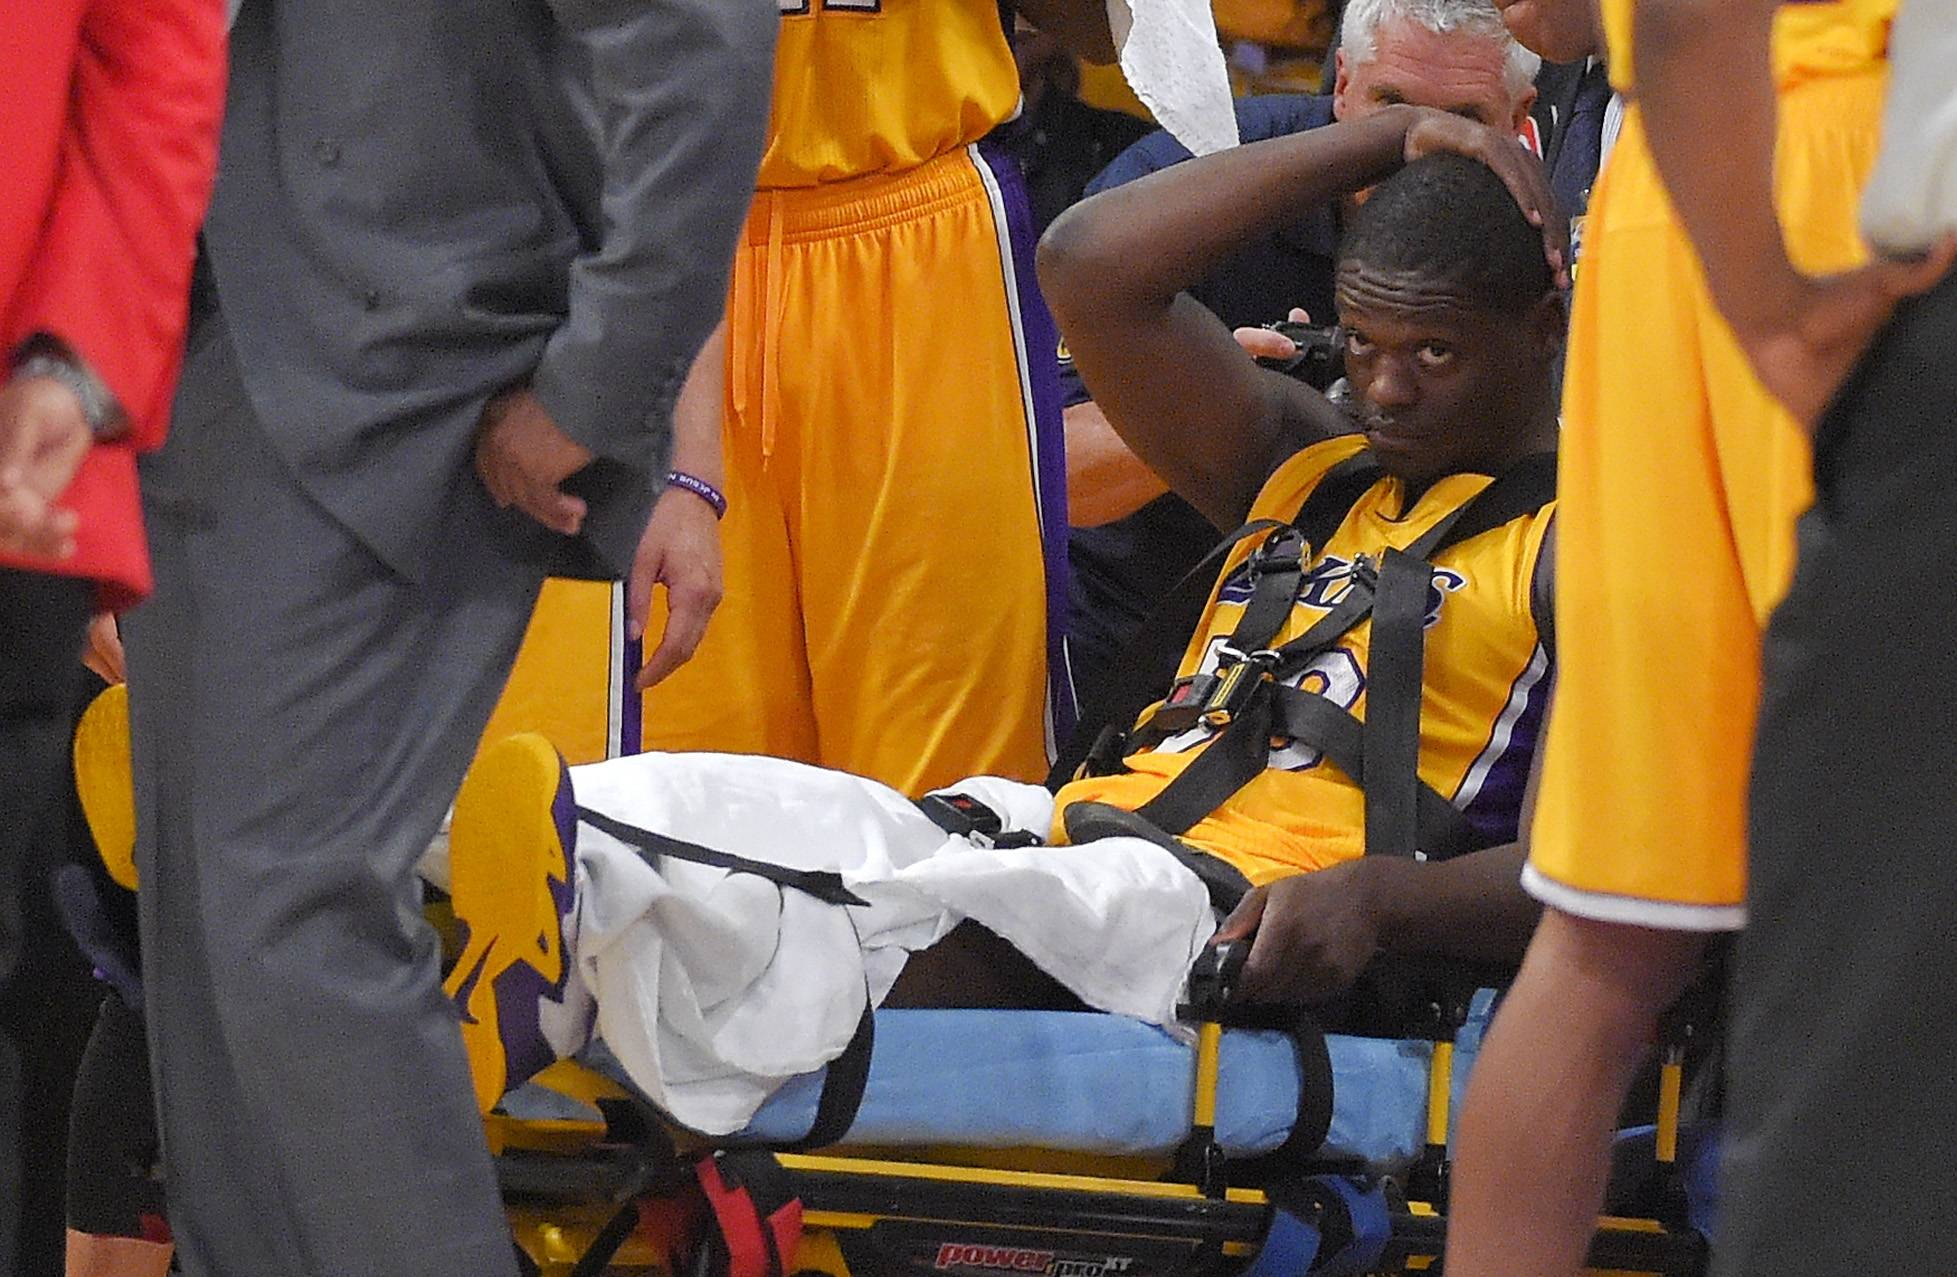 Los Angeles Lakers forward Julius Randle, right, sits on on a stretcher after Randle injured himself on a play during the second half of an NBA basketball game, Tuesday in Los Angeles. Randle is expected to miss the full NBA season.